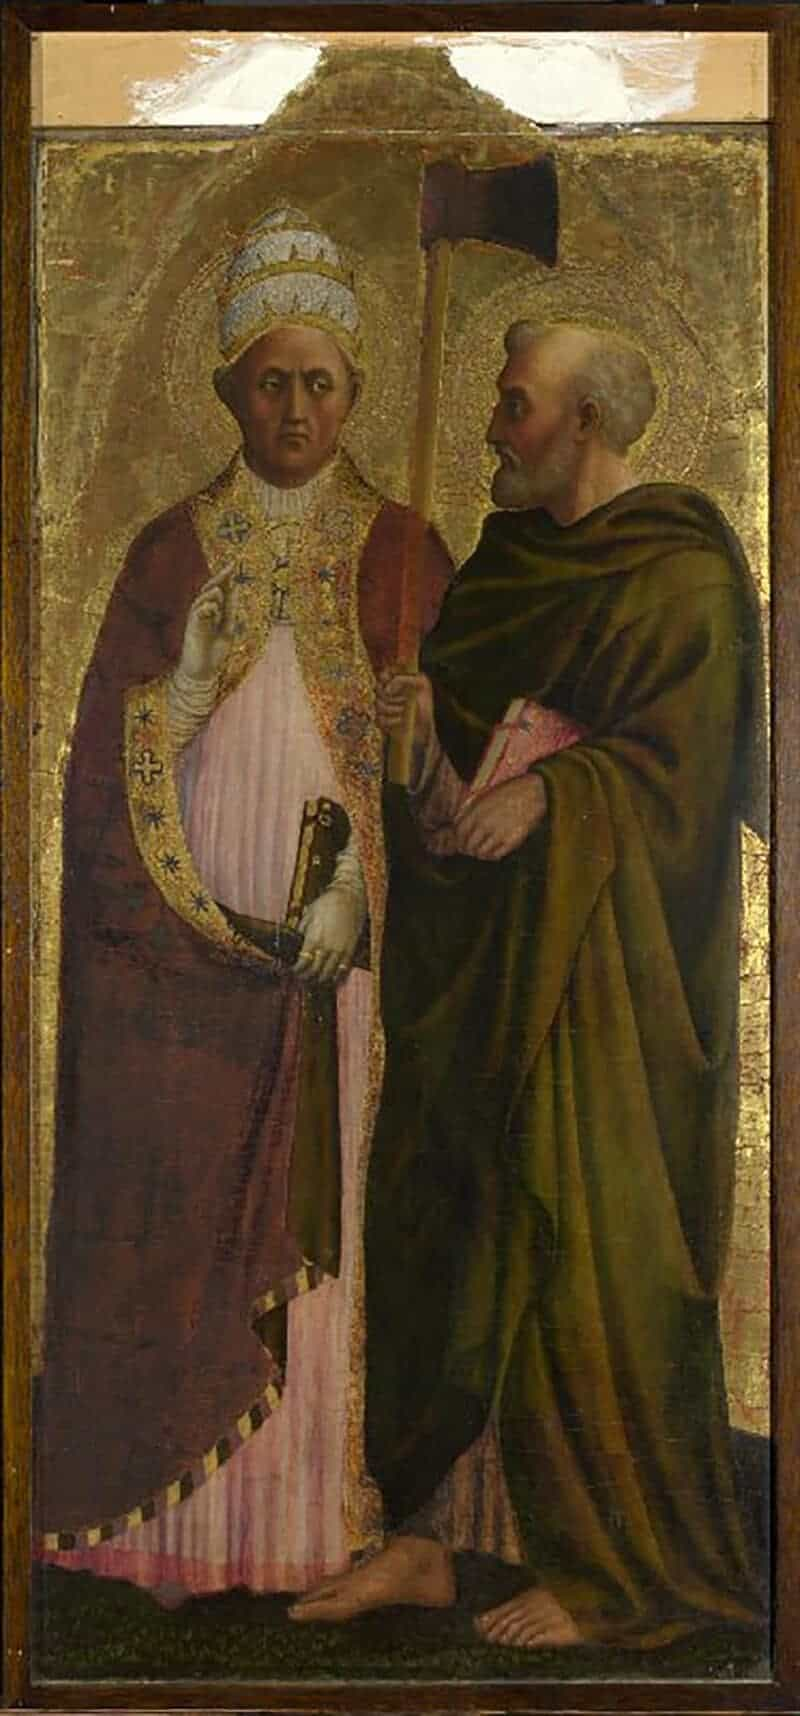 A Pope (Saint Gregory?) and Saint Matthias, about 1428-9, Masolino